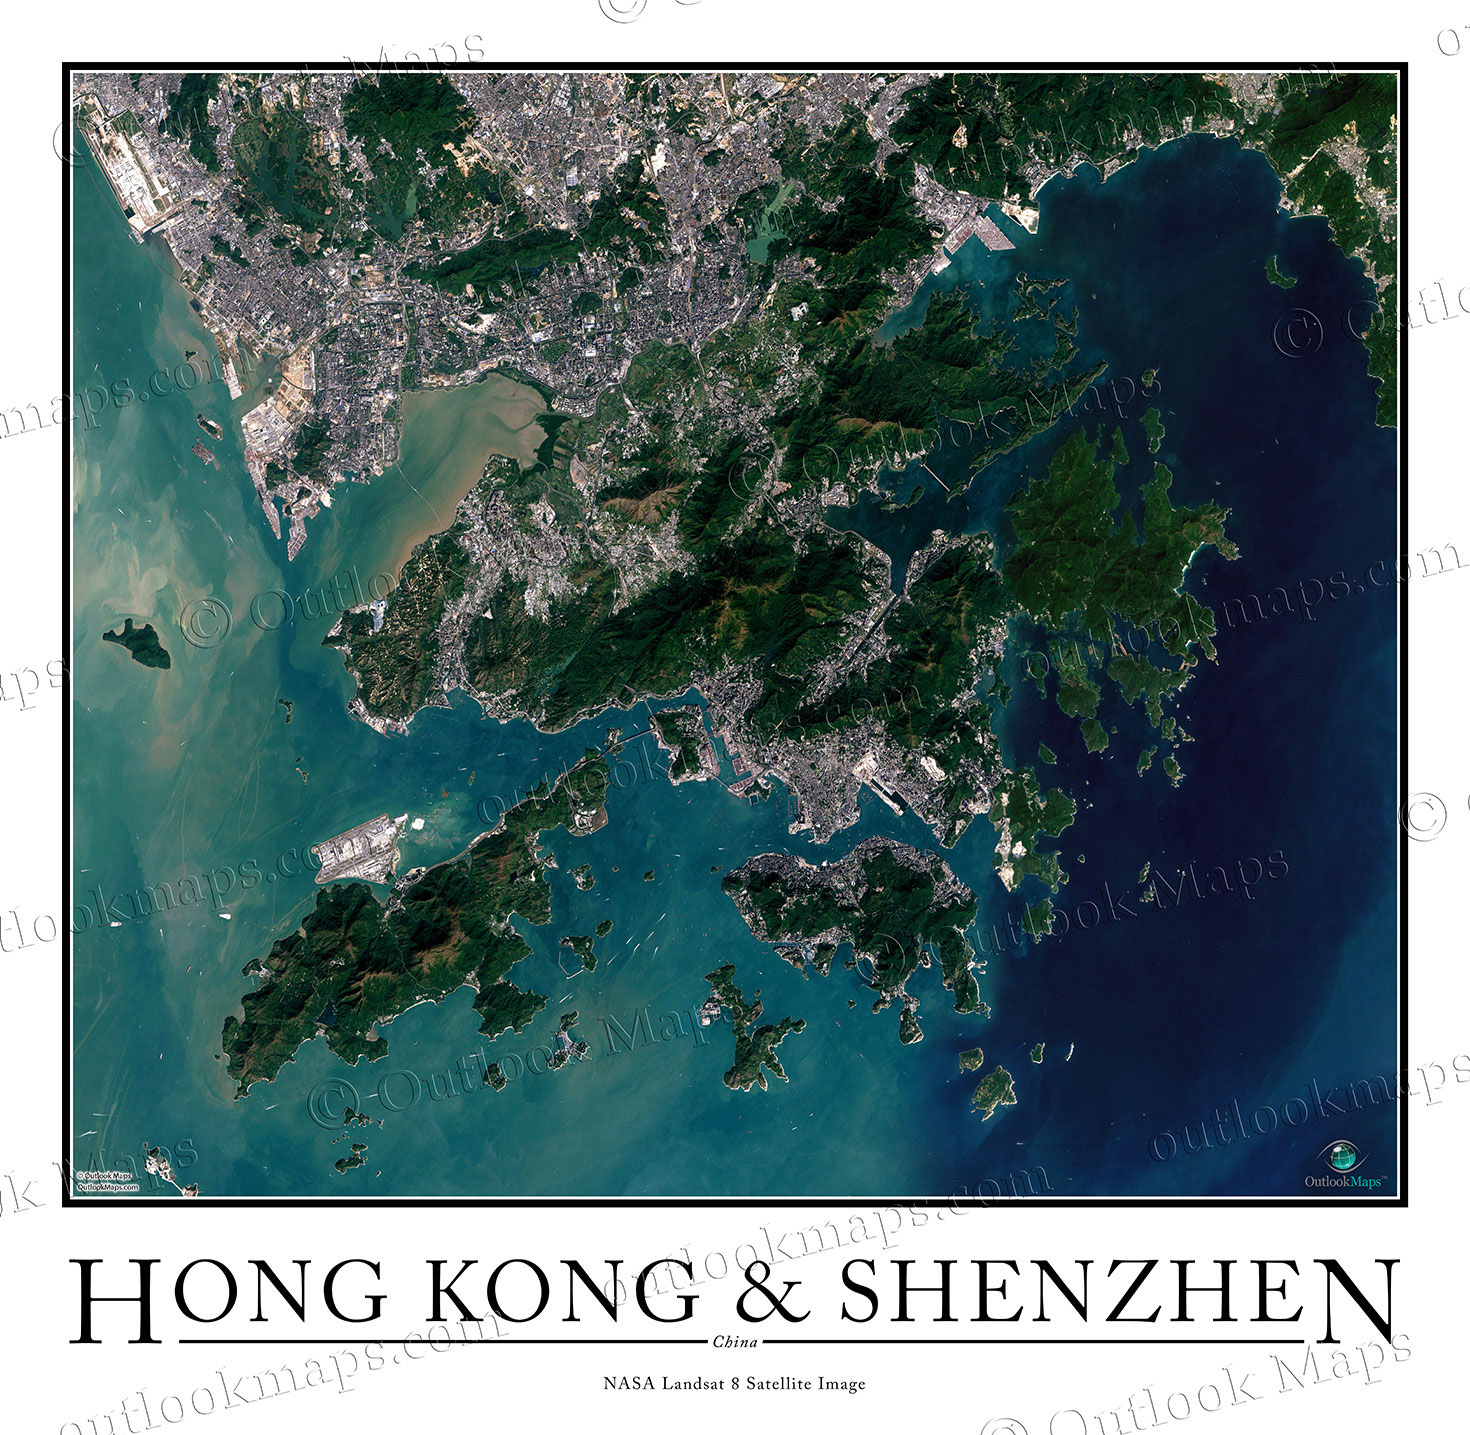 Hong Kong Shenzhen Satellite Map Zoom In Satellite Maps on old maps, real-time earth maps, zoom in on an address, zoom in using satellite, usa terrain maps, bing maps, zoom in satellites live, perspective earth maps, super zoom in maps, cold front weather maps, partinico sicily maps, nasa mars maps, silver switch maps, astronomy maps, air quality maps, google maps, gps maps, zoom satellite homes, nasa earth maps,